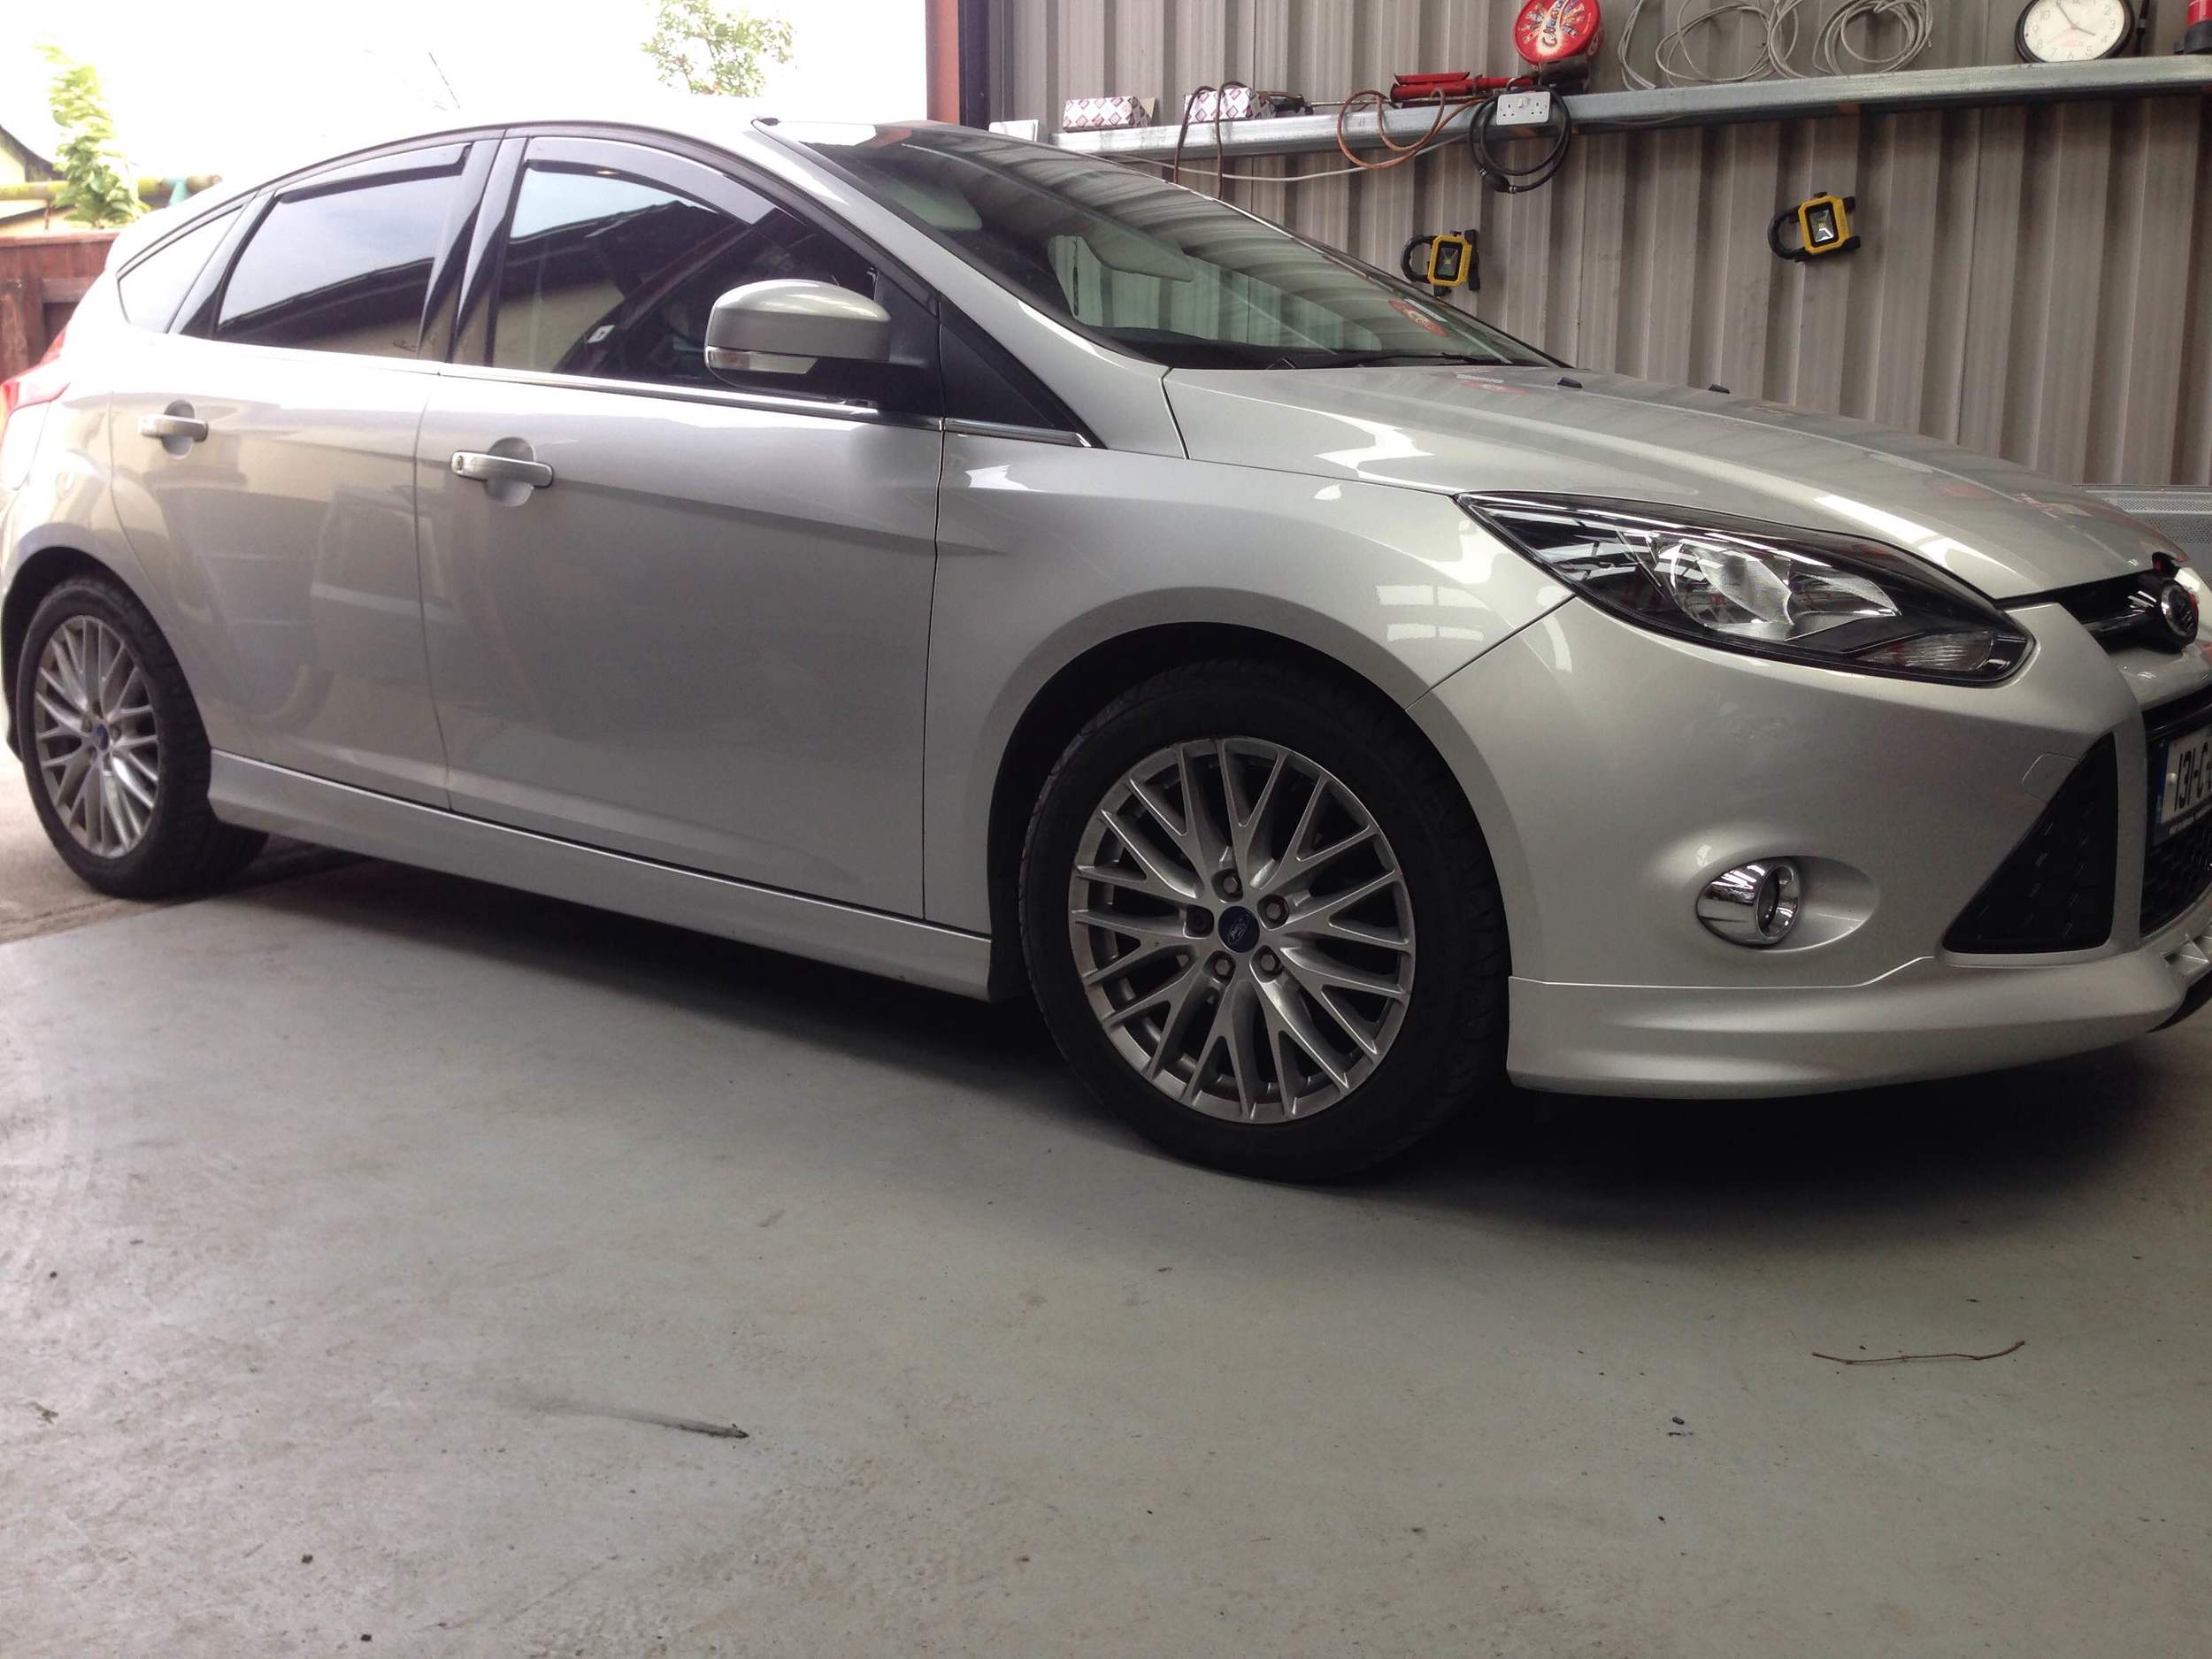 ford focus 1.6 tdci ecu performance remap.JPG